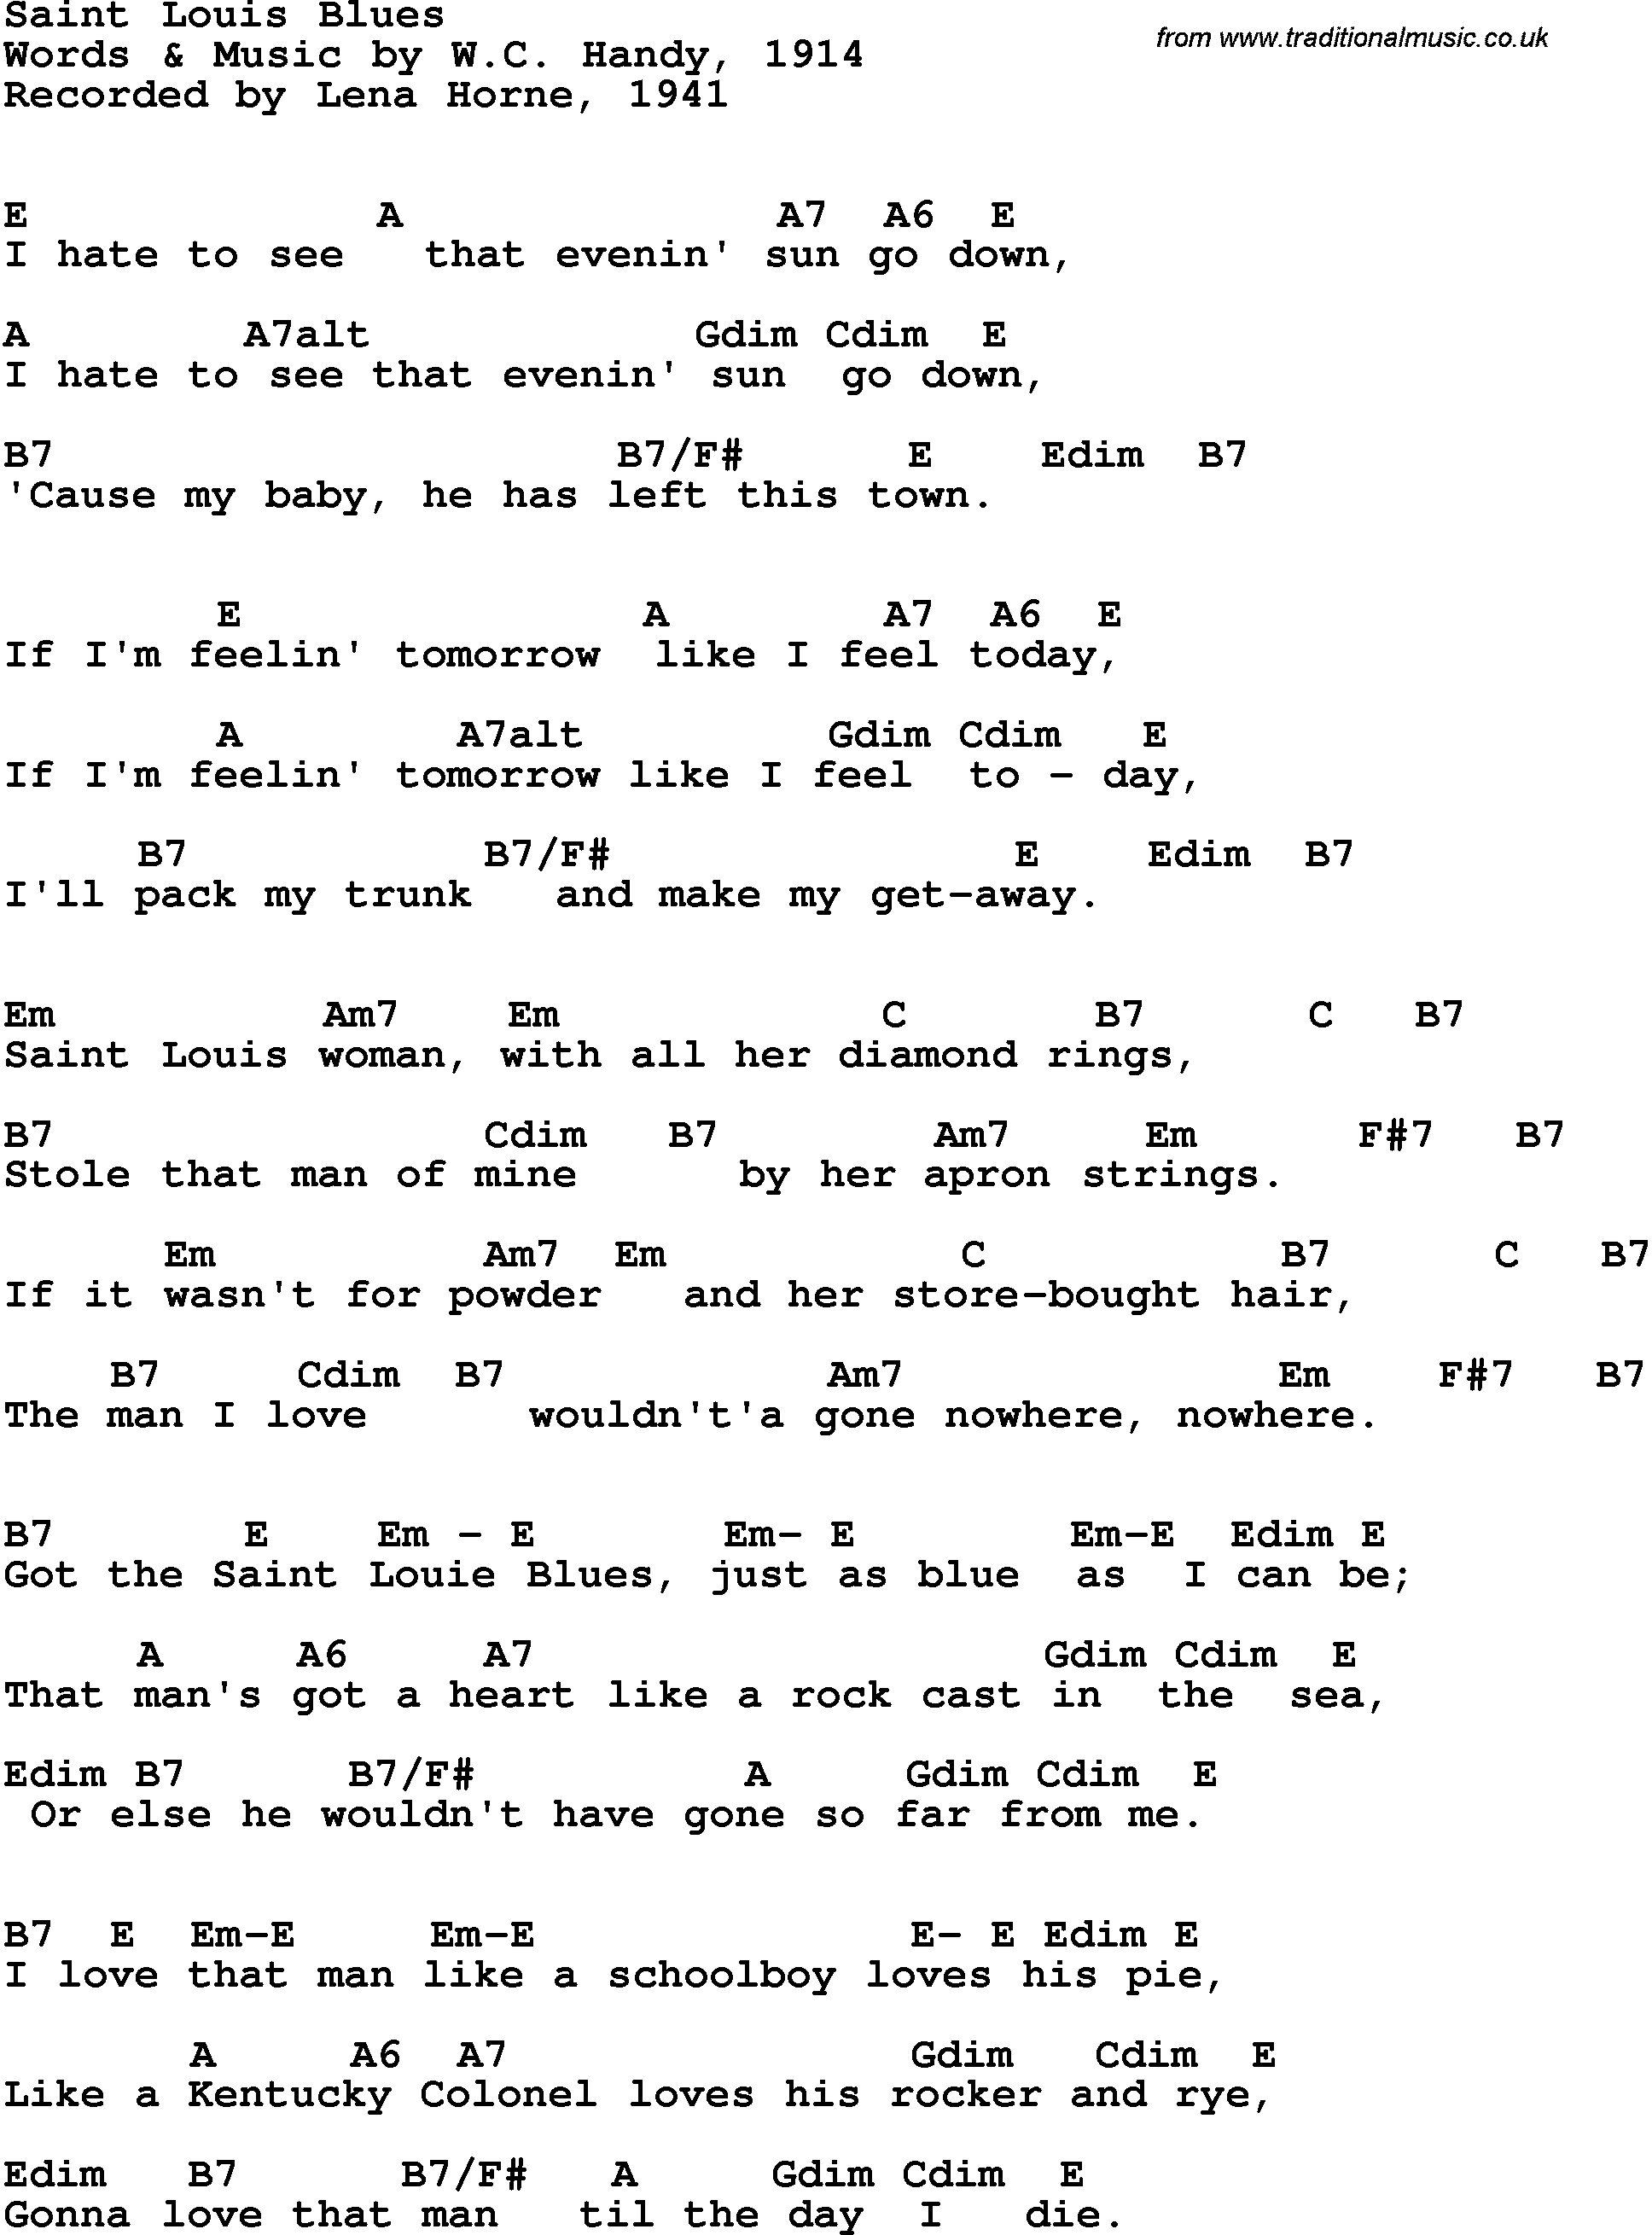 Song Lyrics With Guitar Chords For Saint Louis Blues Lena Horne 1941